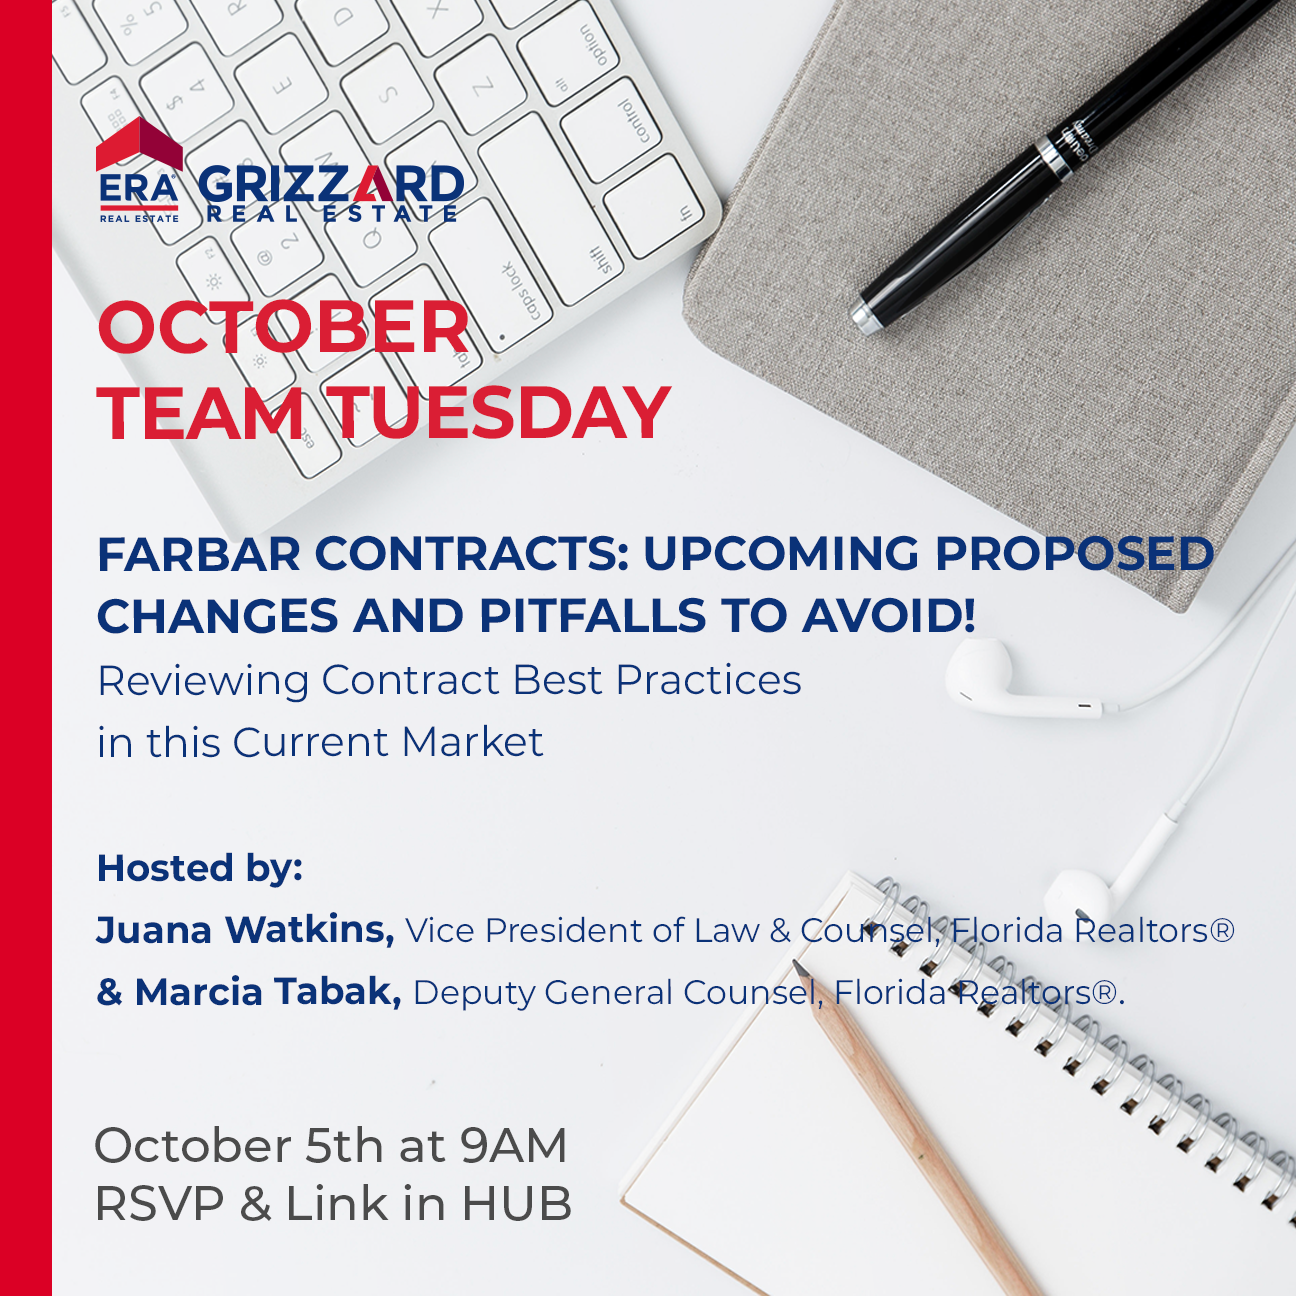 October Team Tuesday: FARBAR CONTRACTS: Upcoming proposed changes and pitfalls to avoid!!